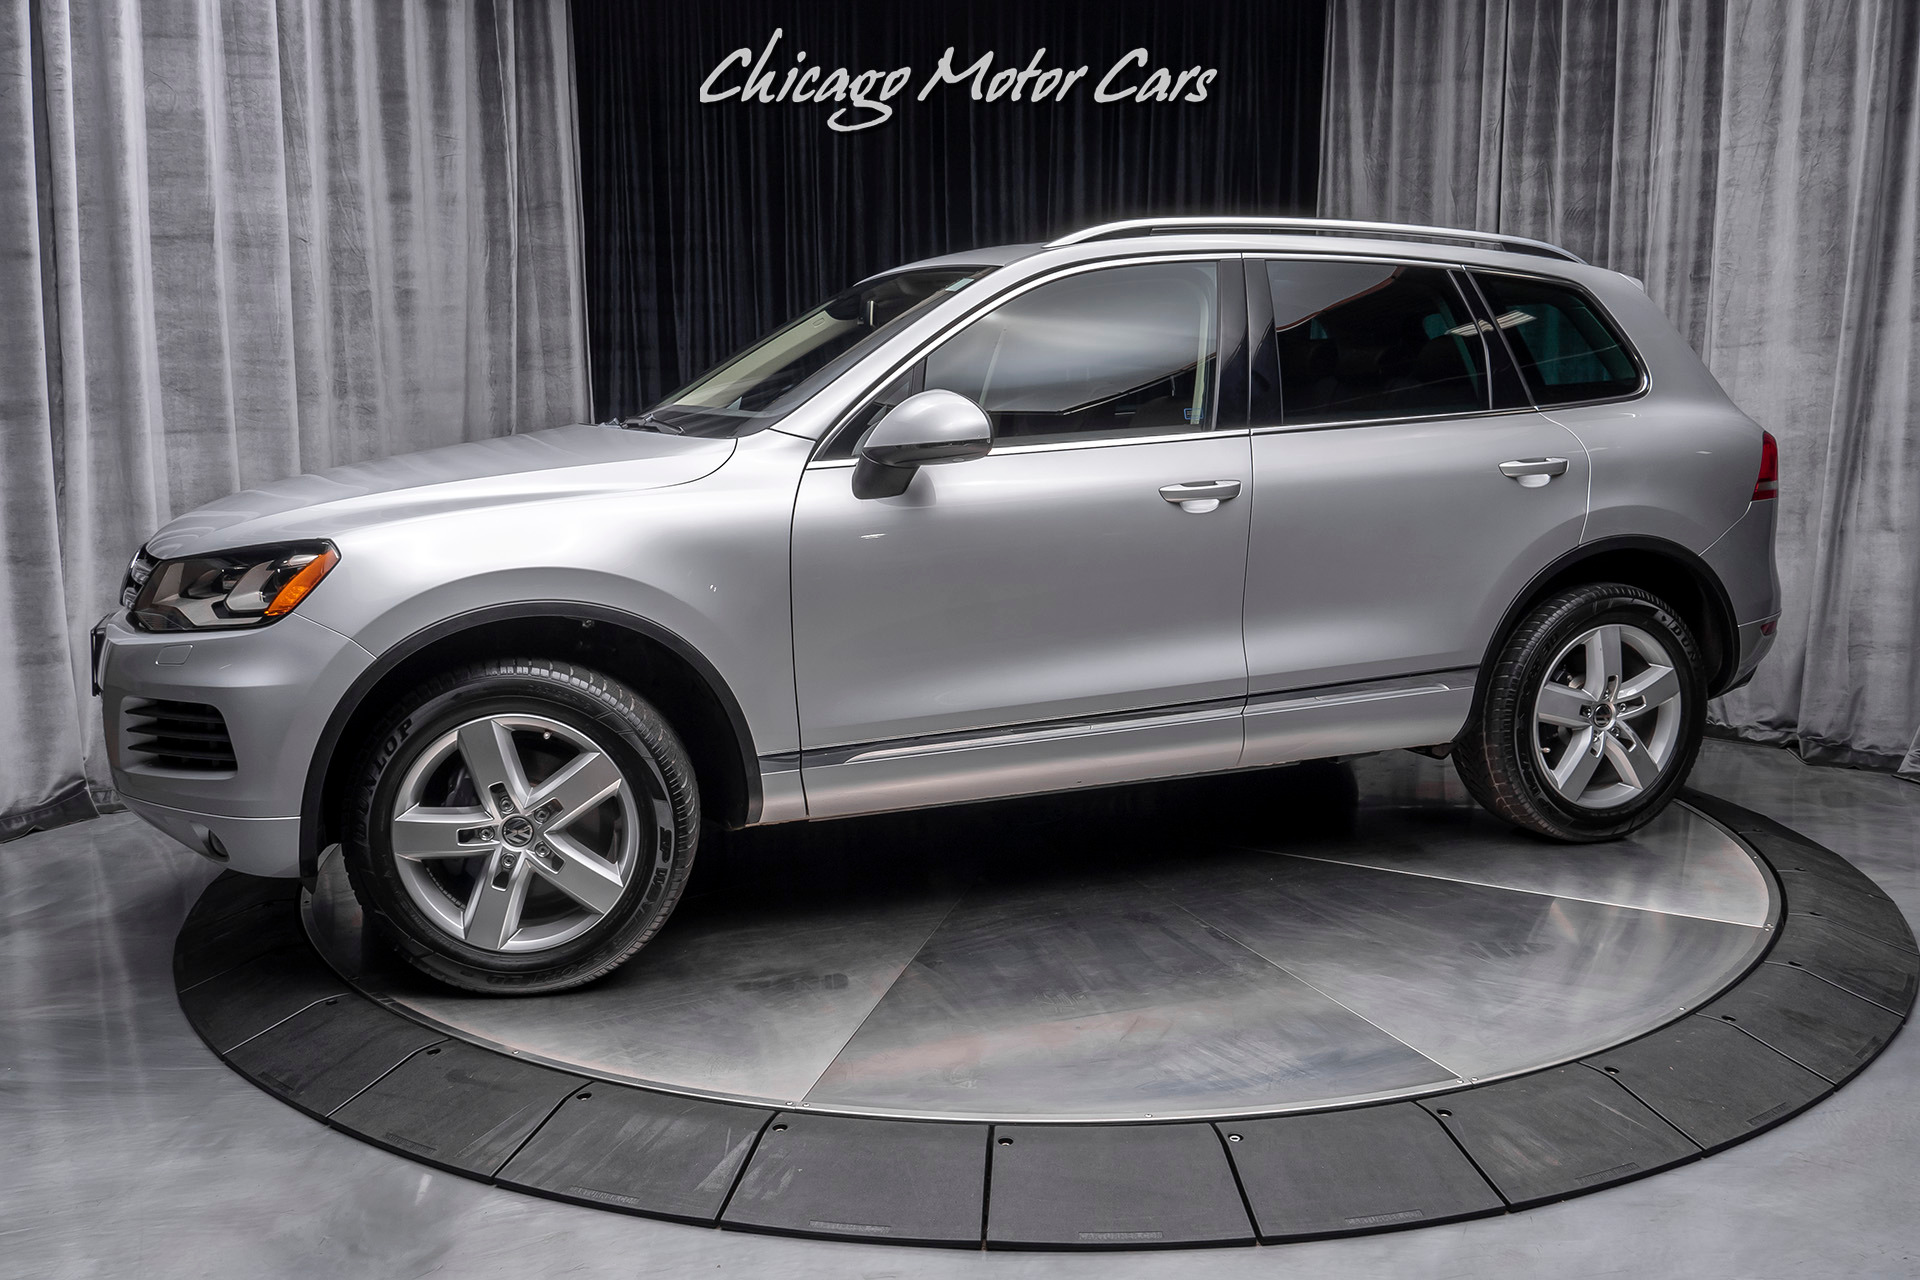 Used 2011 Volkswagen Touareg Tdi Lux Awd For Sale Special Pricing Chicago Motor Cars Stock 16284